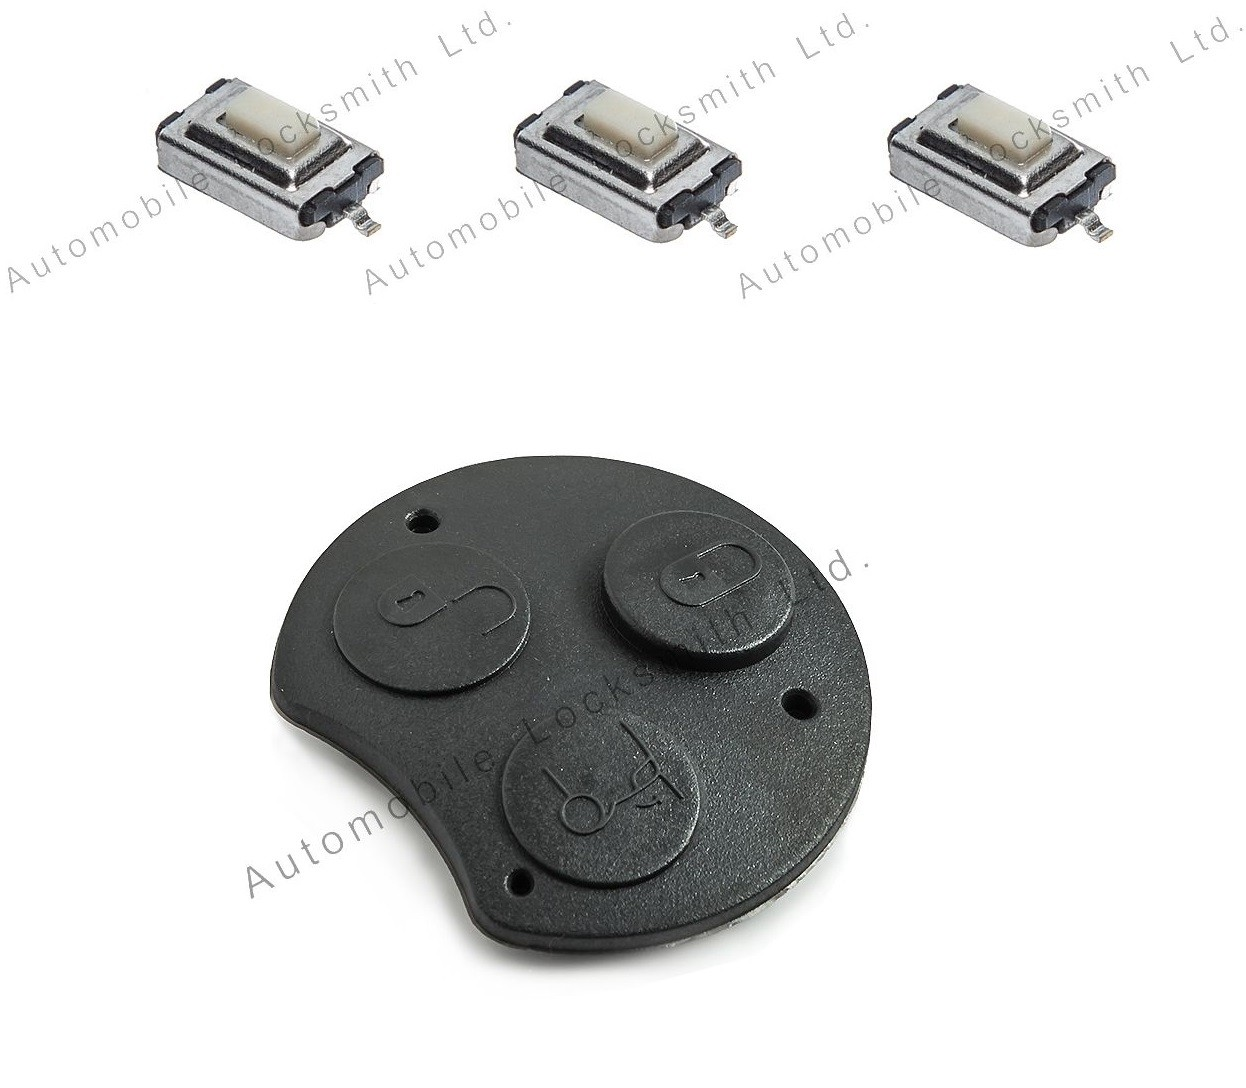 Repair kit for Smart 3 button remote key rubber pad and 3 switches